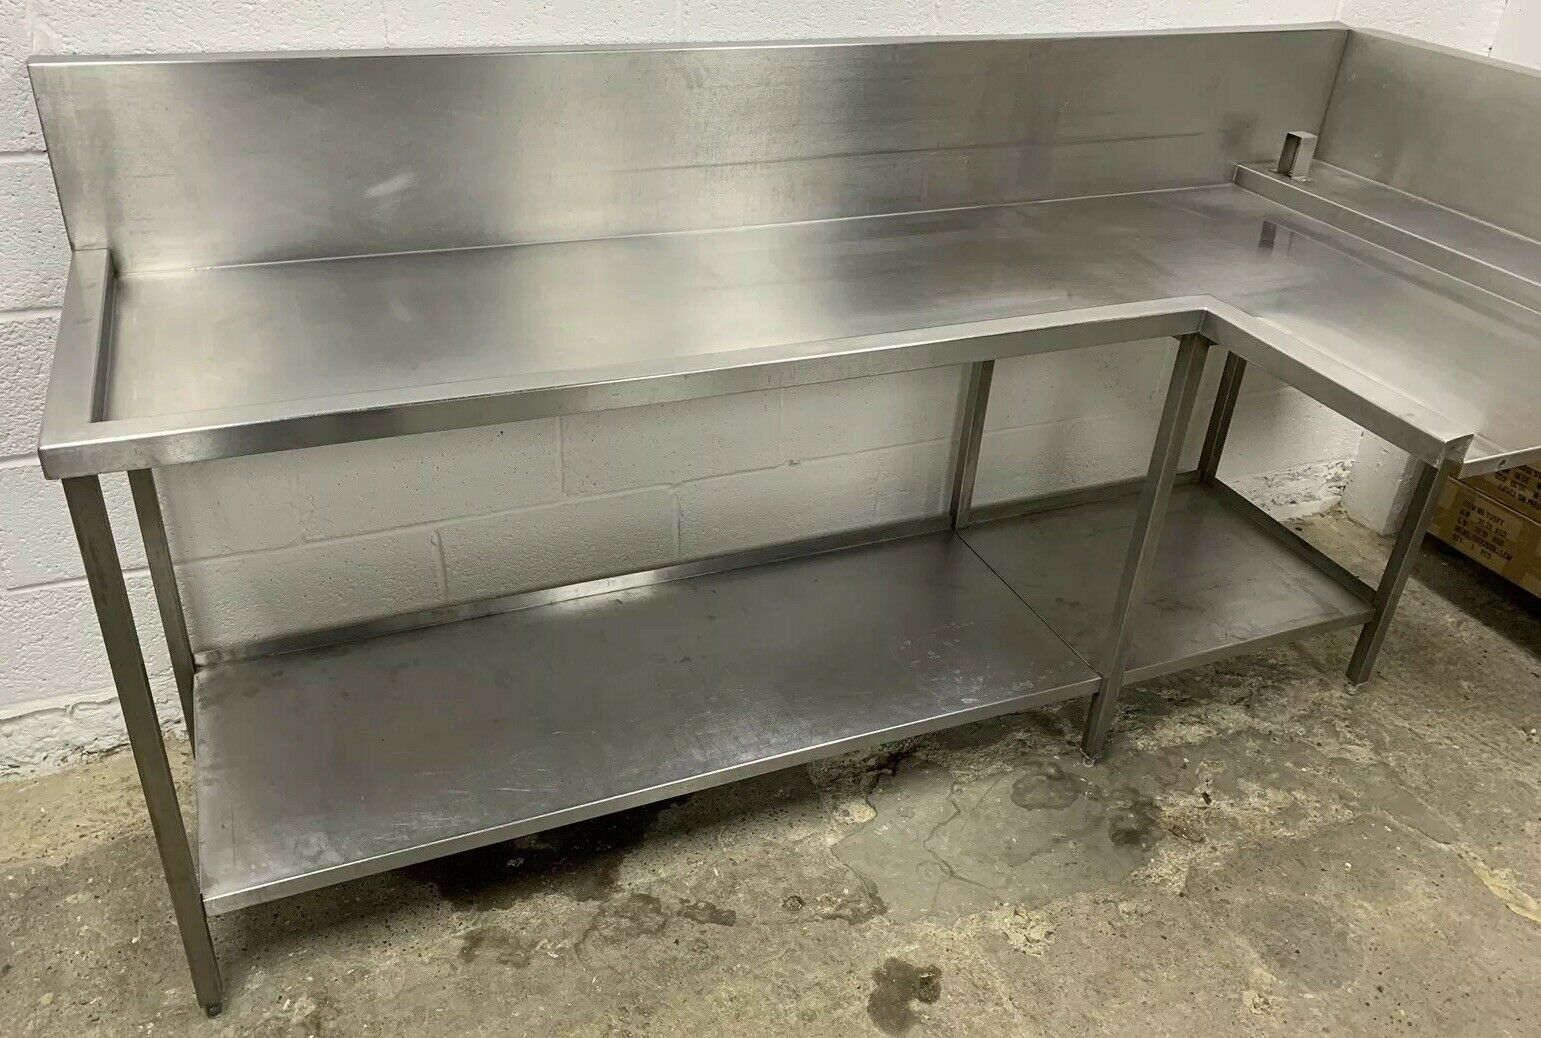 Stainless Steel Dishwasher Outlet / Exit Table - Image 4 of 4